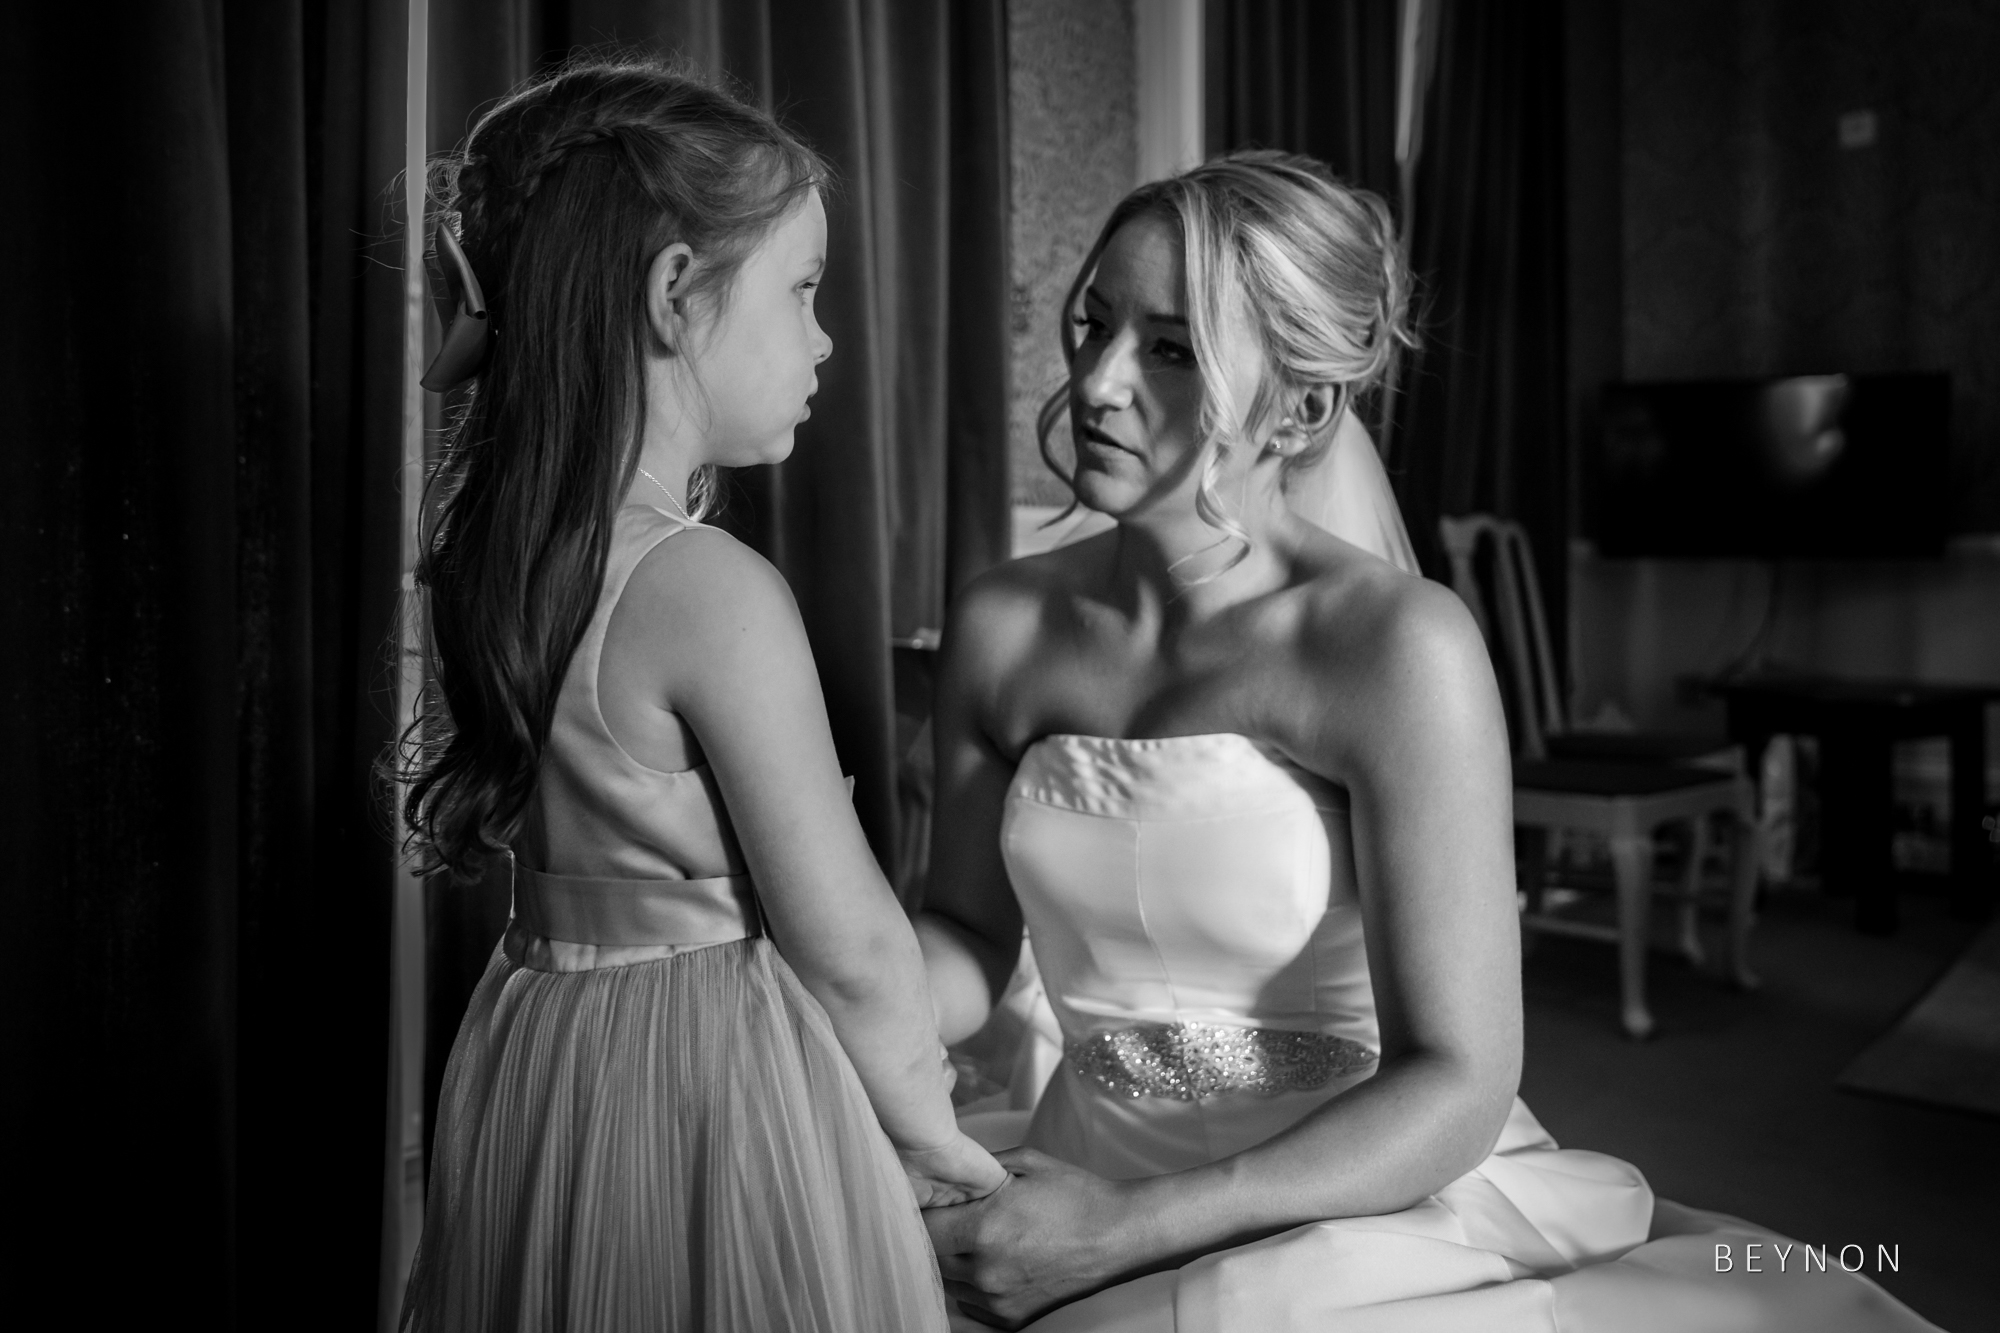 The bride talks to her daughter